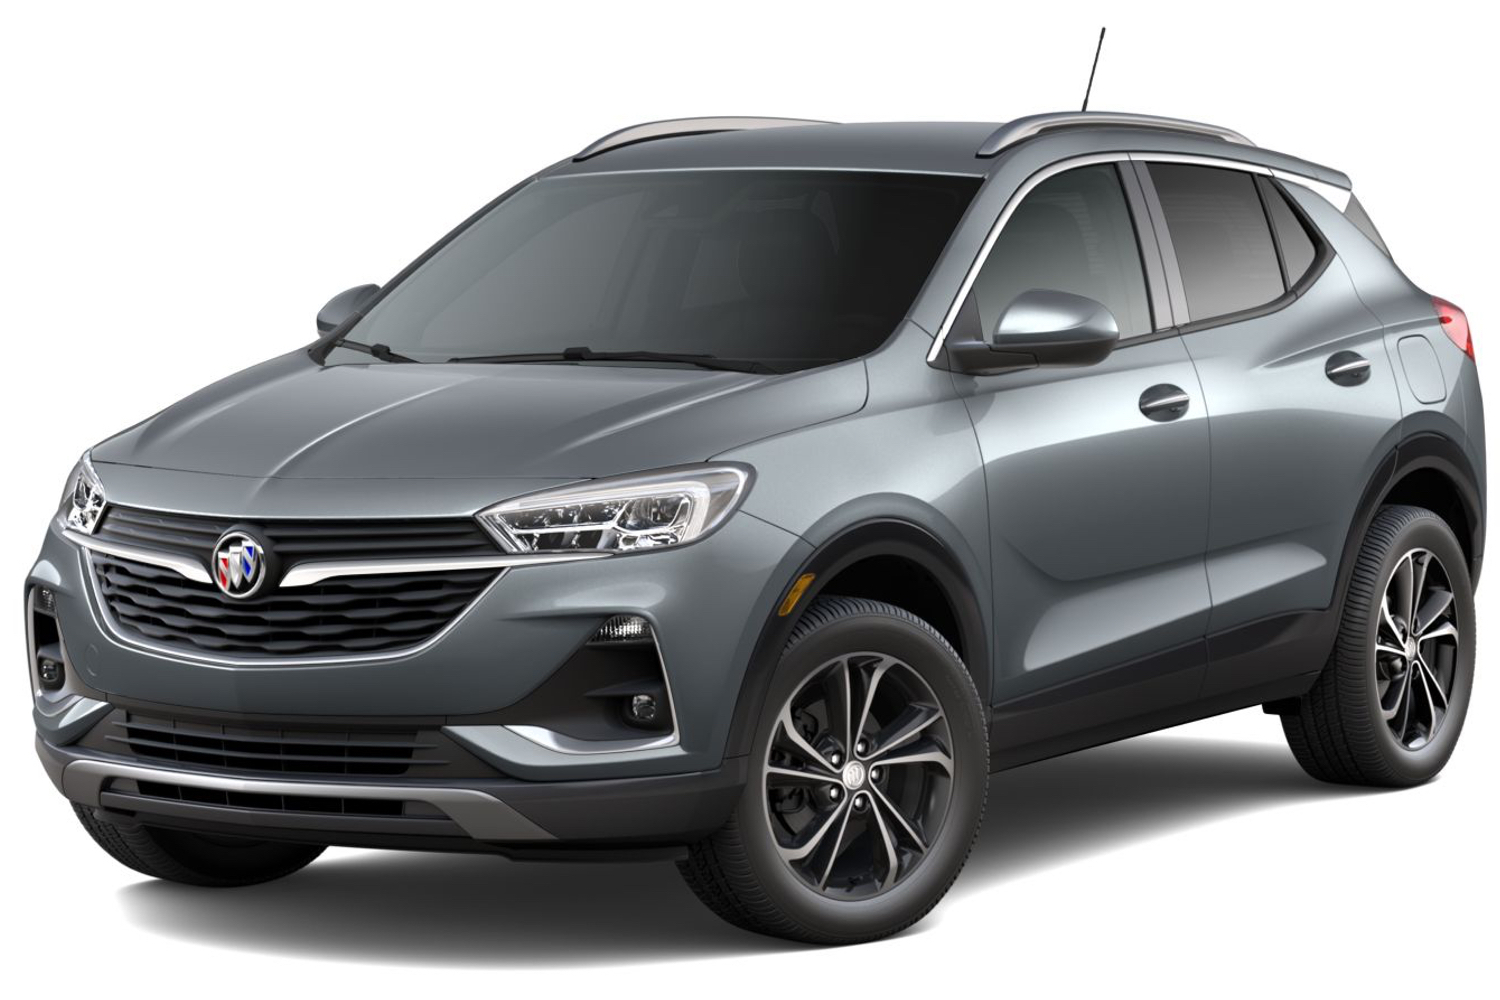 2021 Buick Encore Gx Exterior Colors | Gm Authority 2021 Buick Enclave Discounts, Discontinued, Exterior Colors